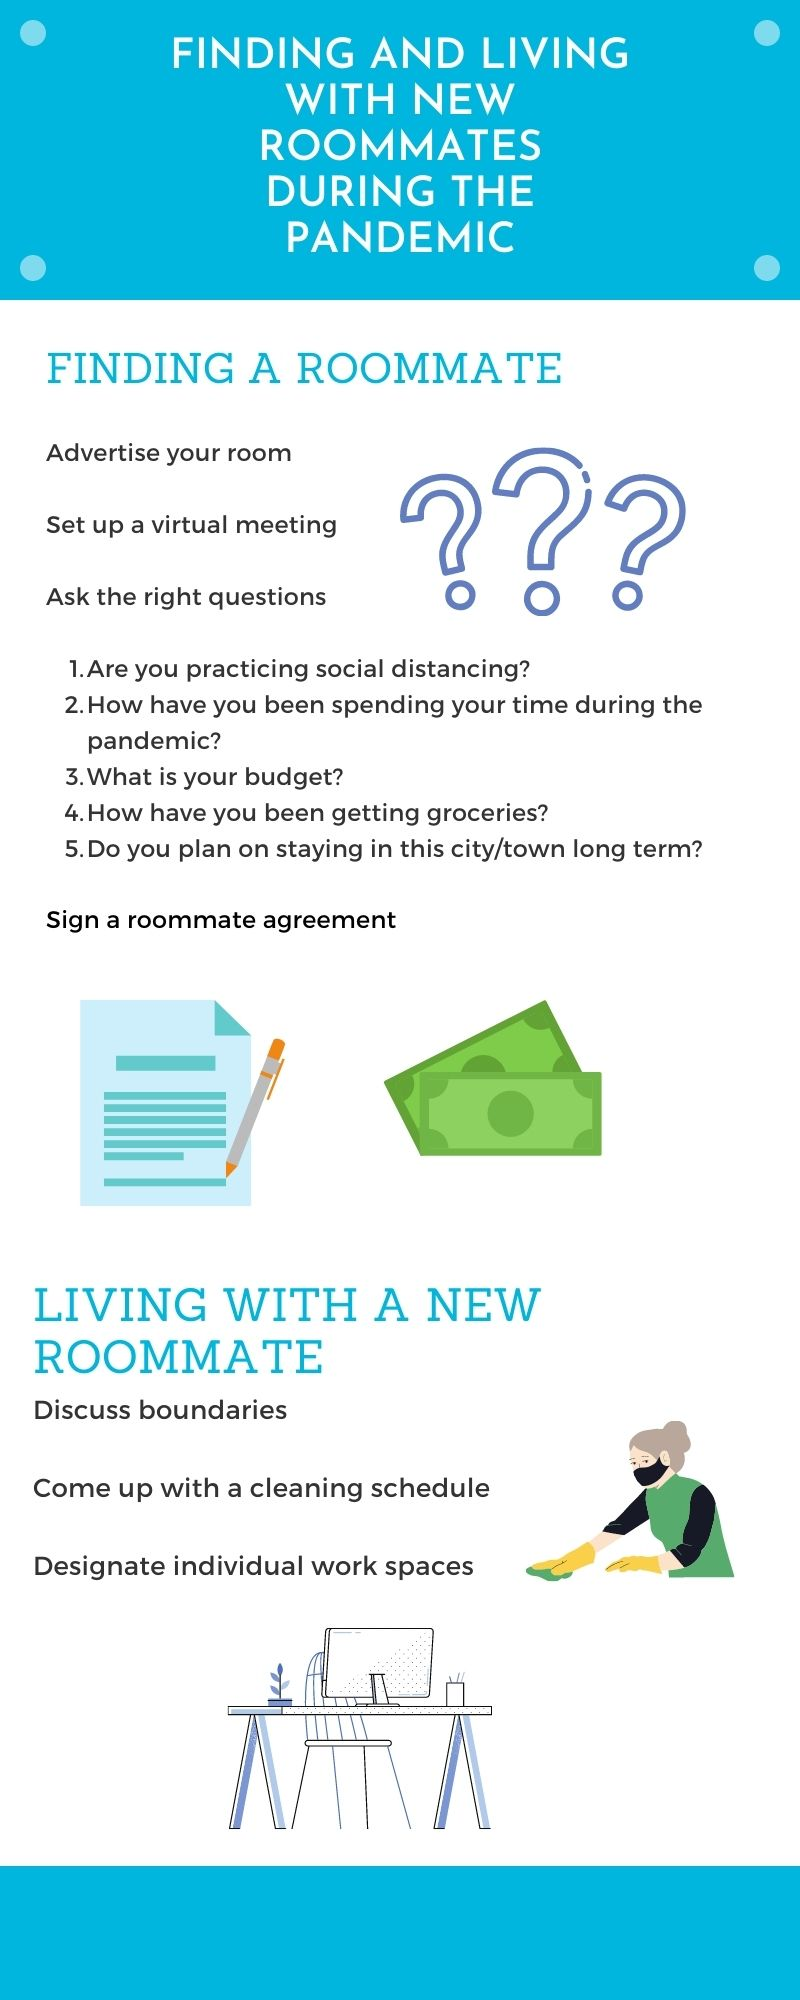 Student Roommates: Finding and Living with New Roommates During the Pandemic